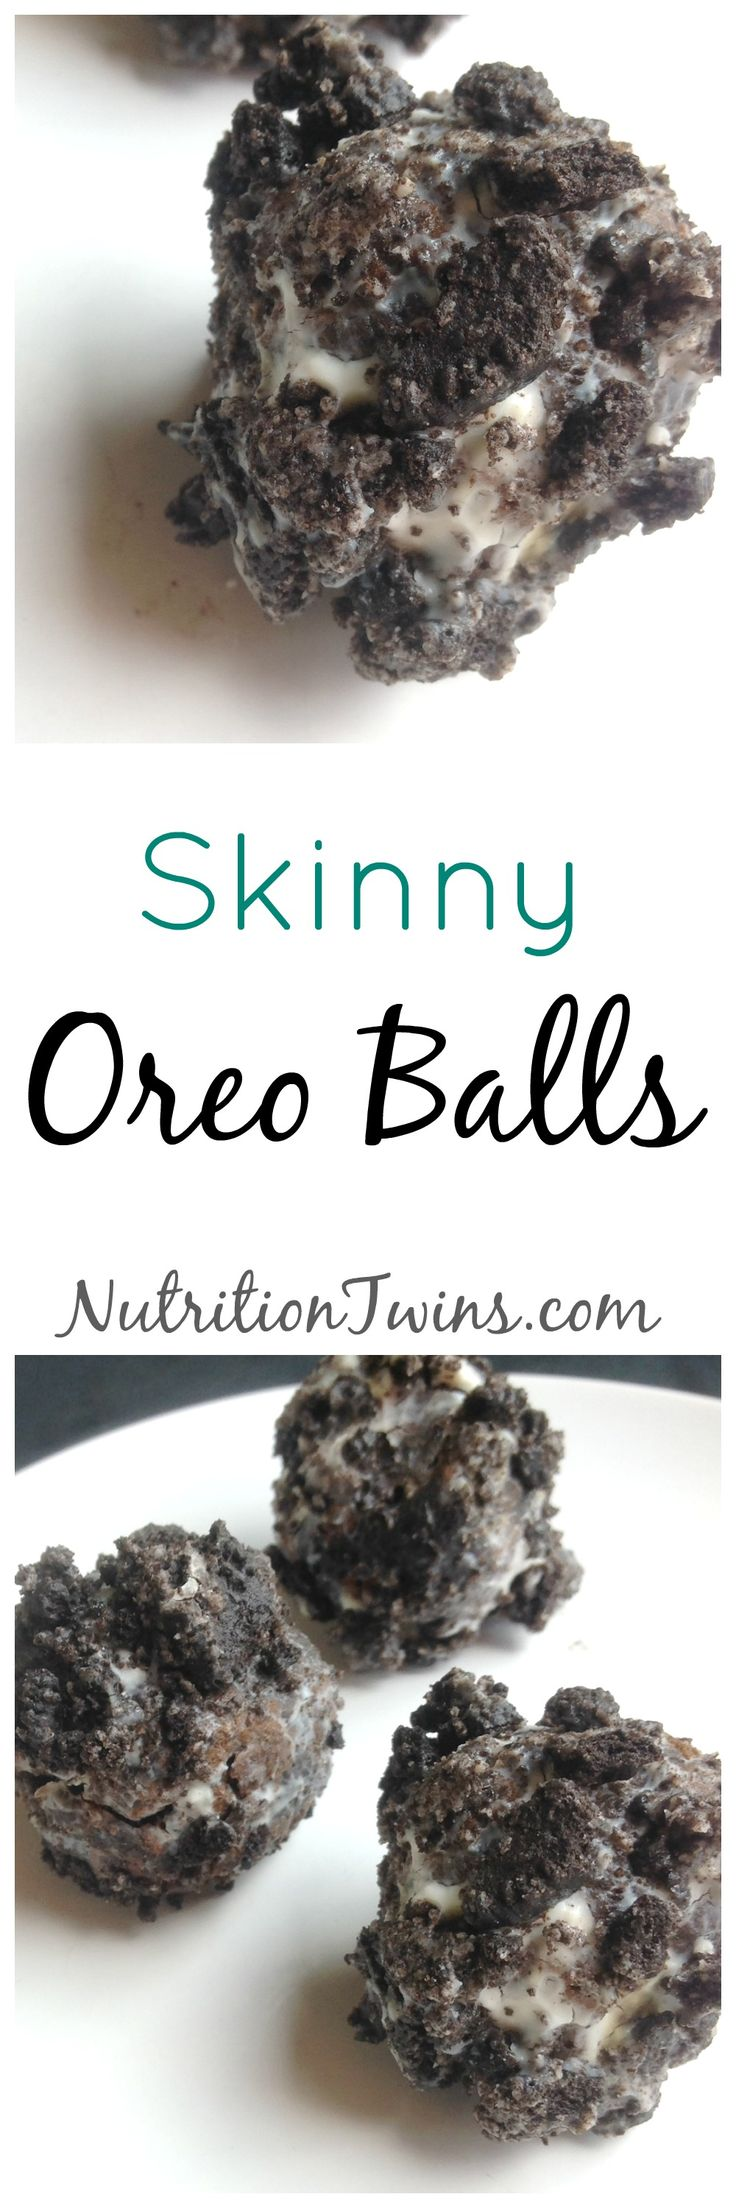 Skinny Oreo Balls | Only 50 Calories | Lightened up Way to get your sweet treat | For Nutrition & Fitness Tips & RECIPES like this please SIGN UP for our FREE NEWSLETTER www.NutritionTwins.com